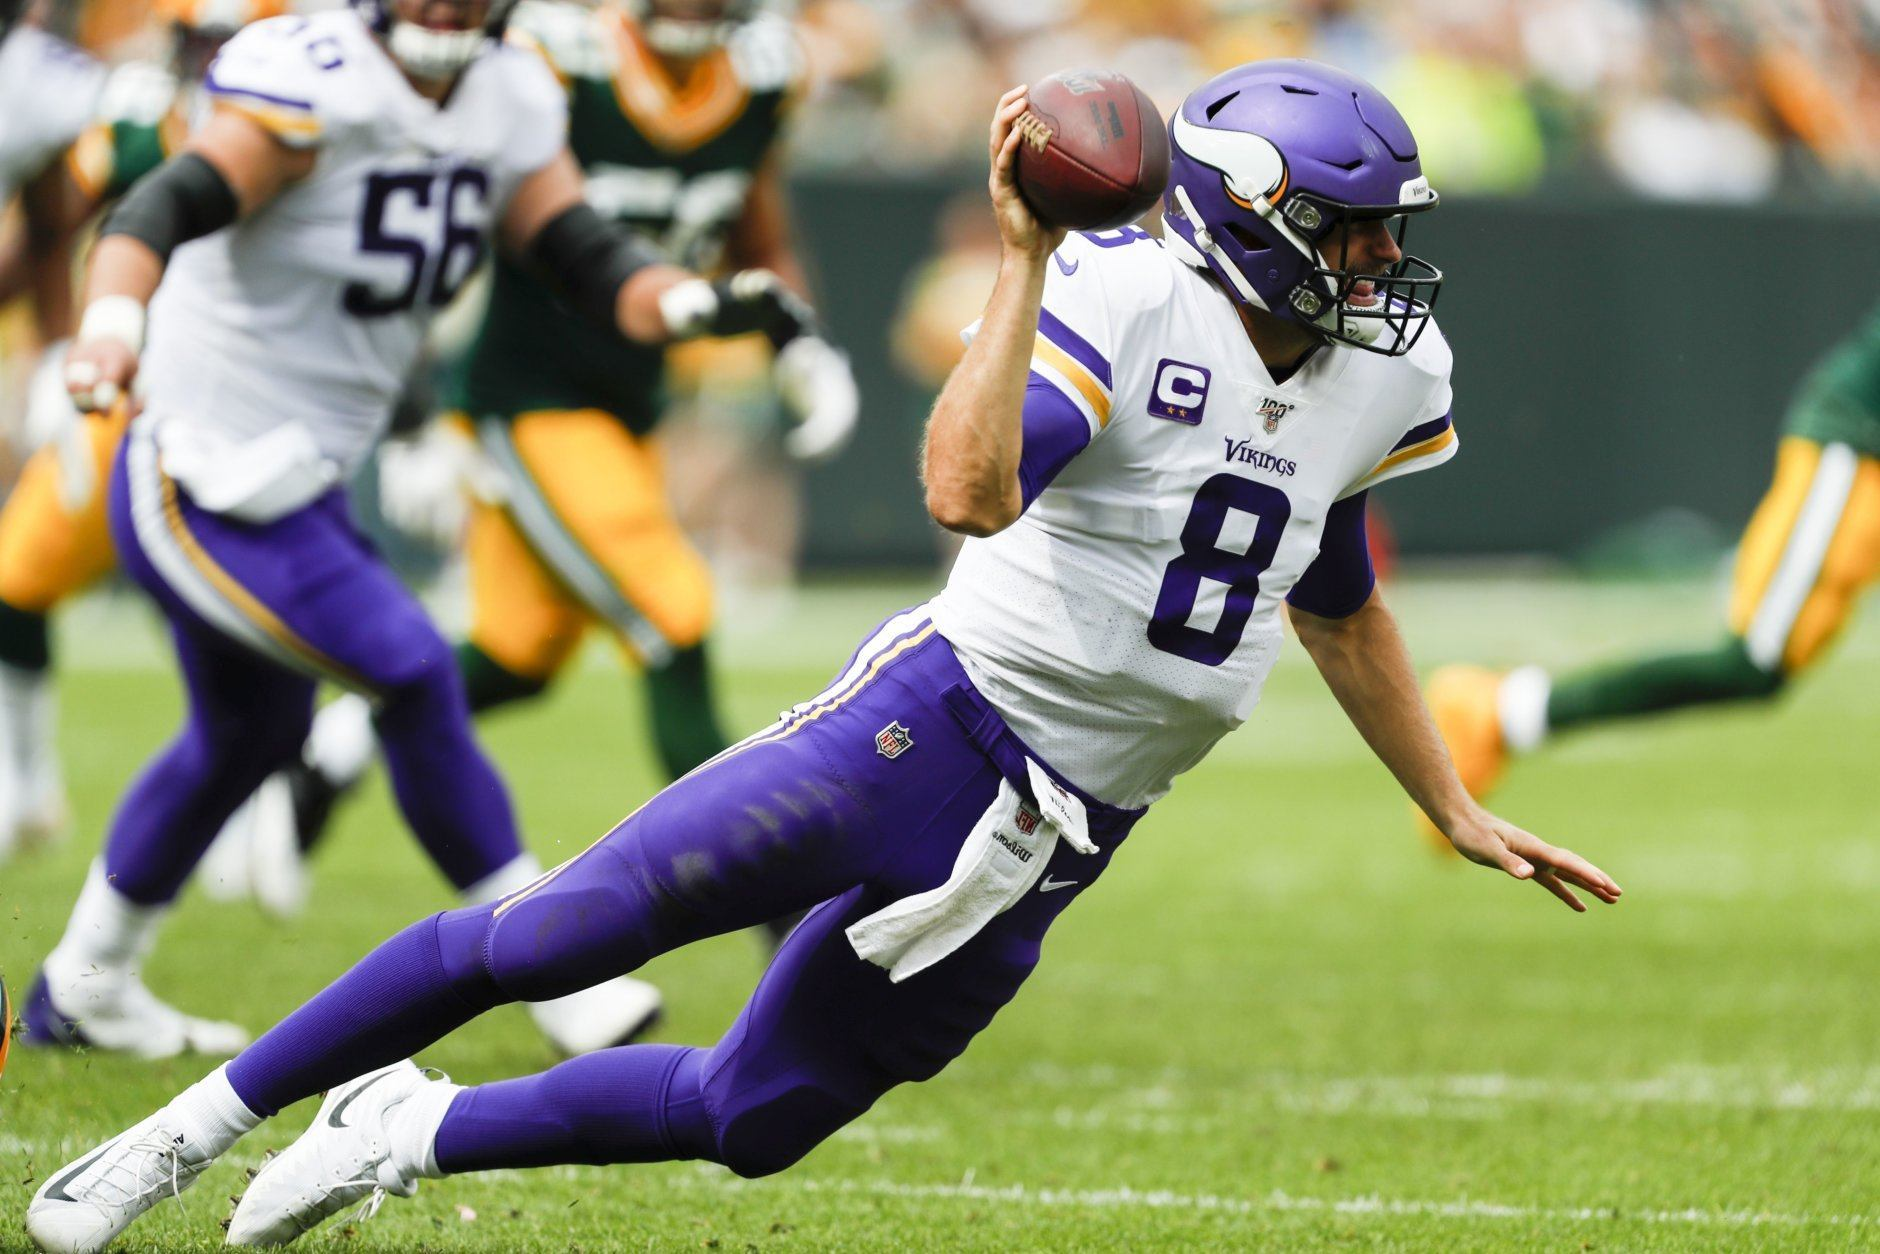 "<p><b><i>Vikings 16</i></b><br /> <b><i>Packers 21</i></b></p> <p>Even though Matt LaFleur is the first Packers coach since Vince Lombardi to start 2-0, Aaron Rodgers <a href=""https://profootballtalk.nbcsports.com/2019/09/15/aaron-rodgers-says-he-and-matt-lafleur-werent-yelling-how-much-we-love-each-other/"" target=""_blank"" rel=""noopener"">still isn&#8217;t feeling him</a>. And Minnesota still isn&#8217;t feeling Kirk Cousins after he threw one of his two picks to former Redskins teammate Preston Smith, and the other to kill a potential go-ahead drive to continue <a href=""https://www.yardbarker.com/nfl/articles/this_stat_shows_just_how_bad_kirk_cousins_has_been/s1_12680_30008363"" target=""_blank"" rel=""noopener"">a mindnumbingly terrible trend</a>. Captain Kirk got a 154-yard performance from Dalvin Cook and the defense played well enough to win on the road, so dude really is running out of excuses.</p>"